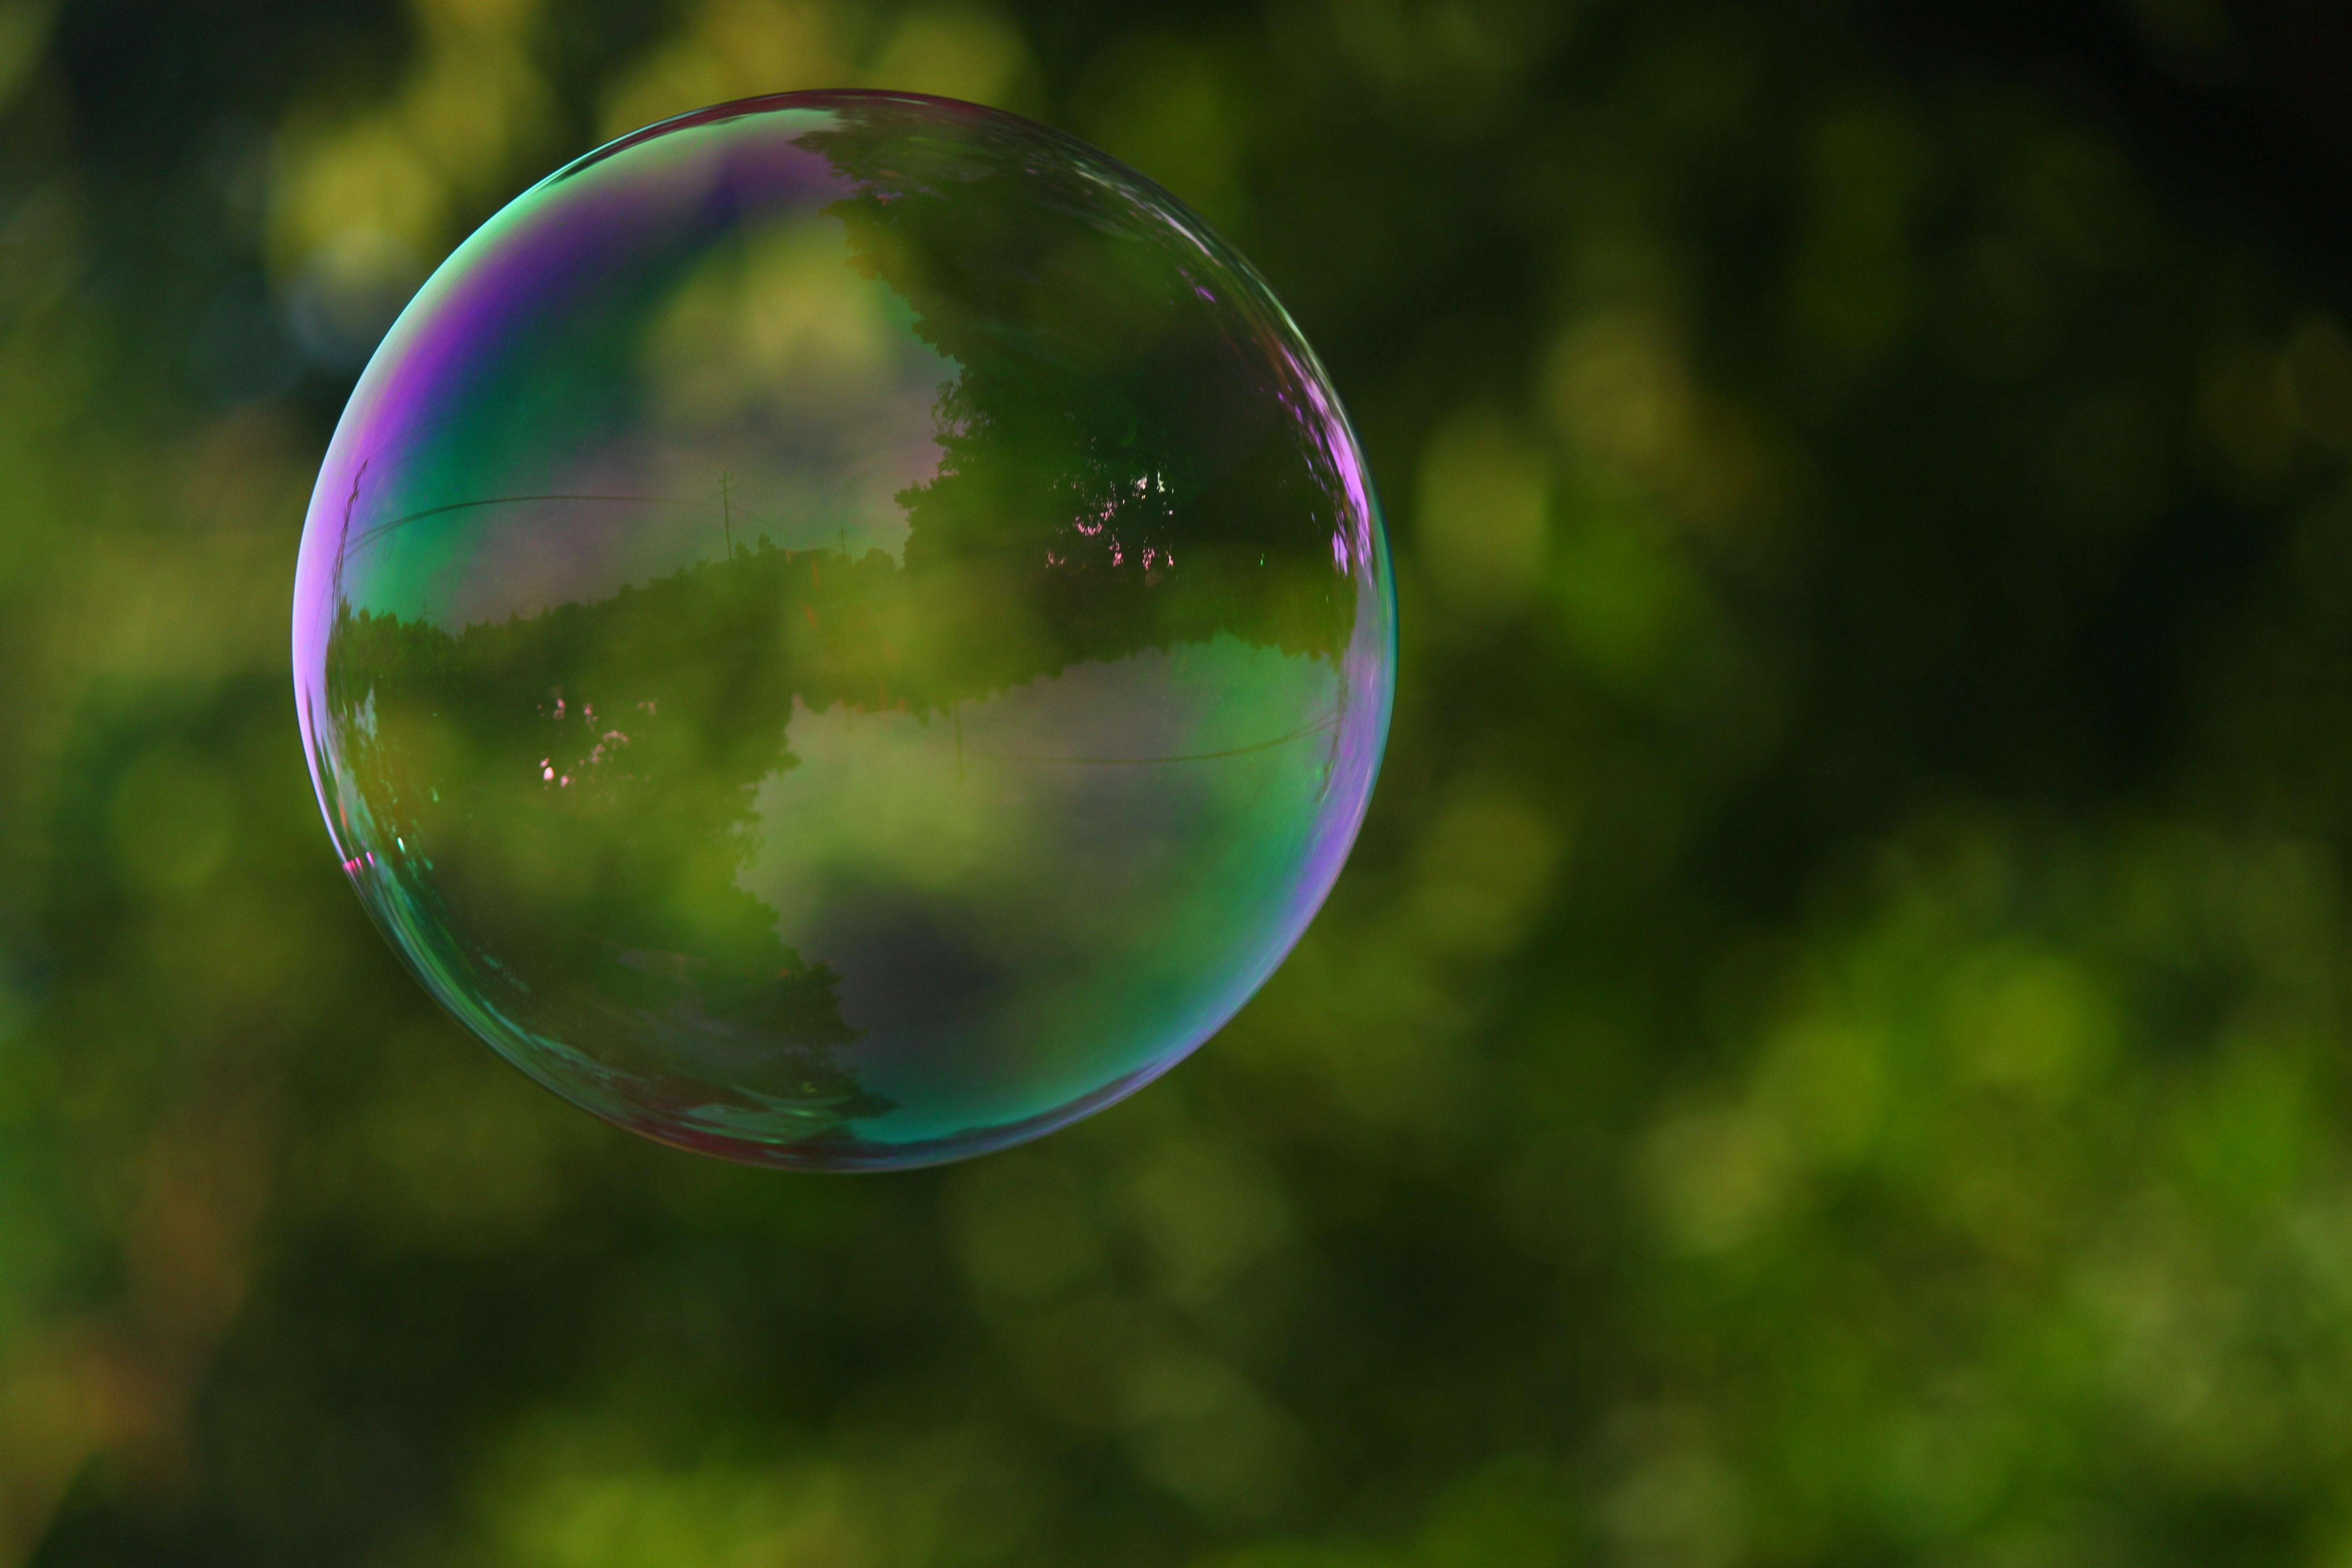 abstract-ball-shaped-blur-235842